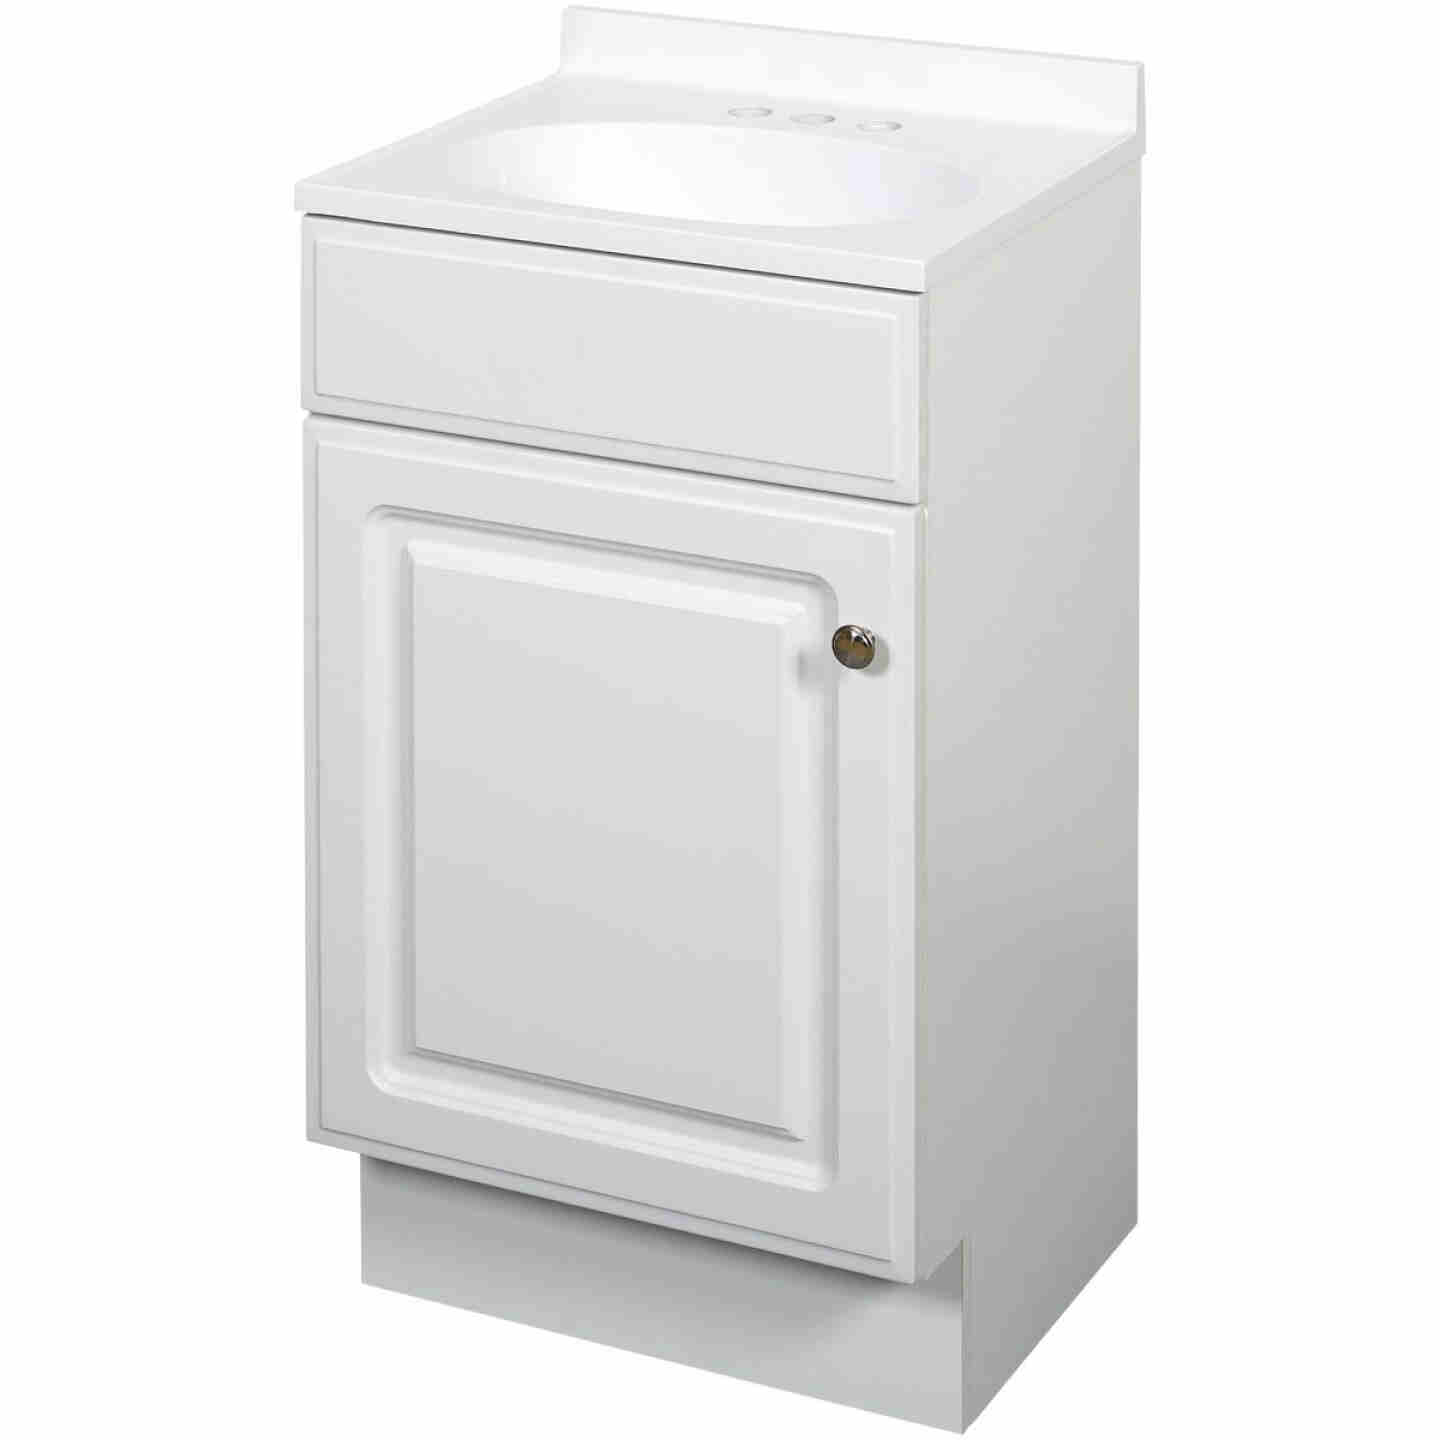 Zenith Zenna Home White 18 In. W x 35 In. H x 16 In. D Vanity with White Cultured Marble Top Image 1